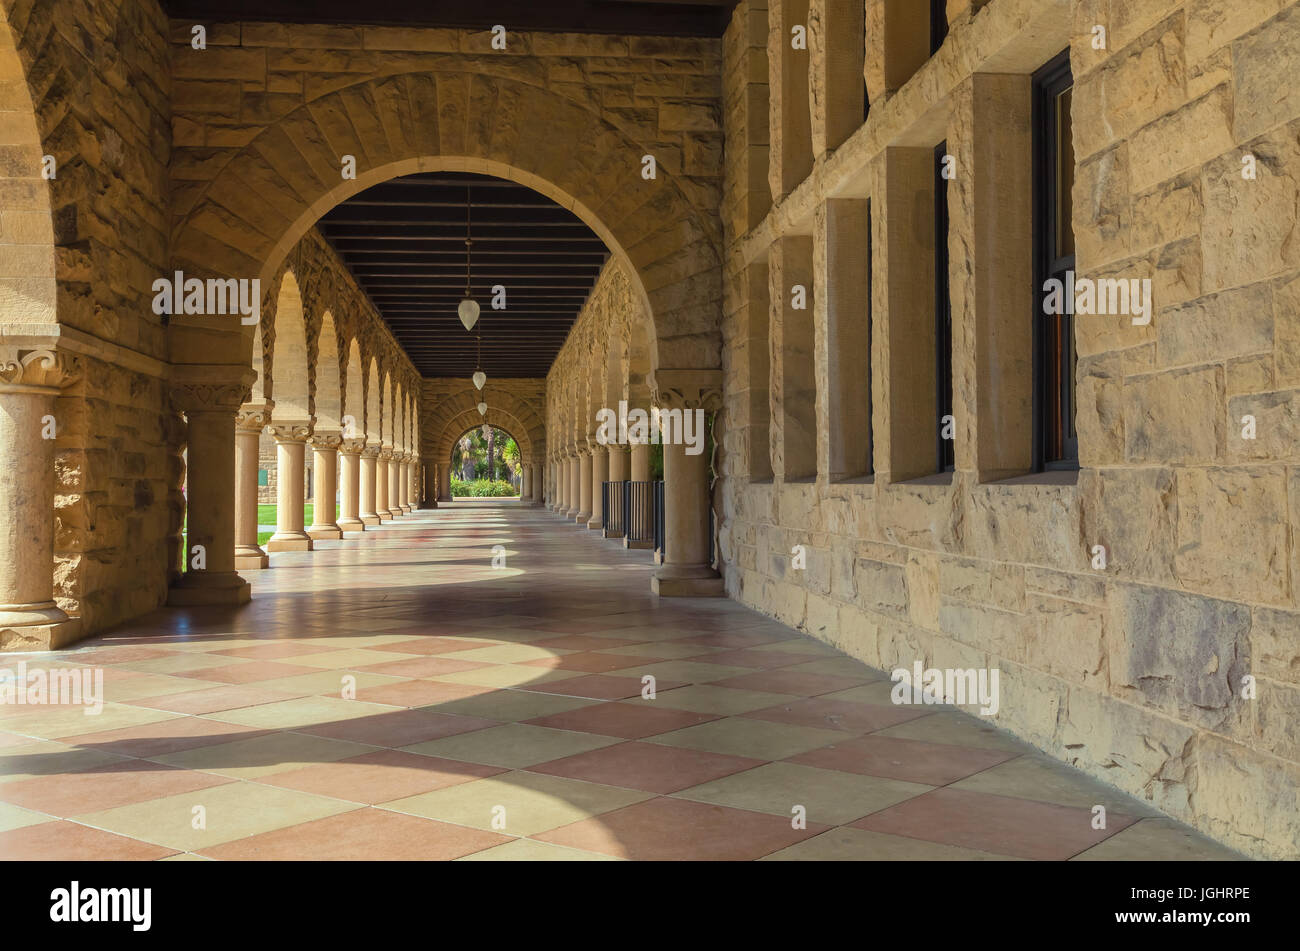 The architectures of the Stanford University campus in Palo Alto, California, USA - Stock Image